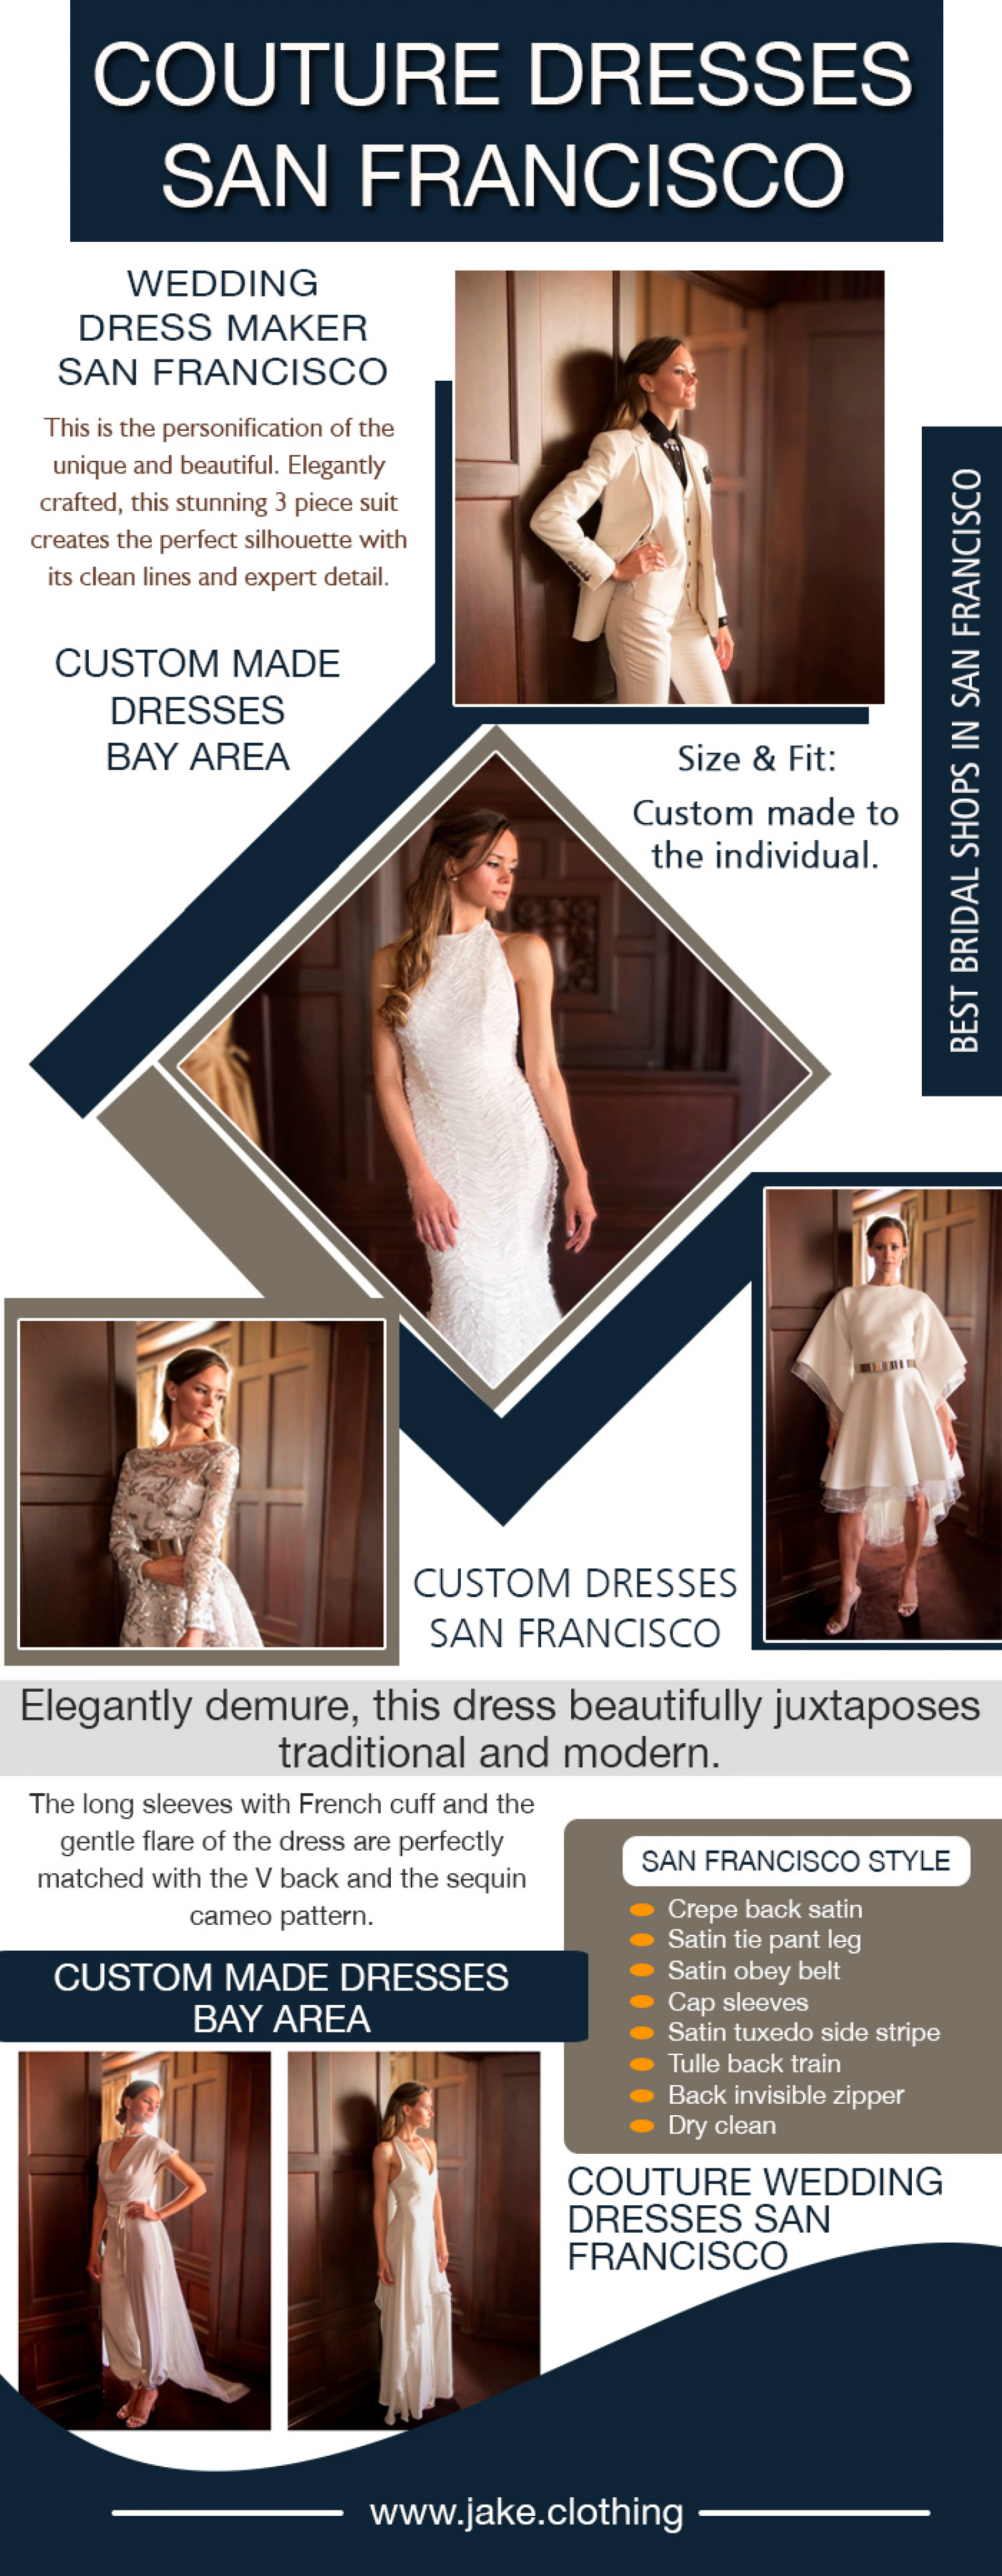 couture dresses san francisco Infographic